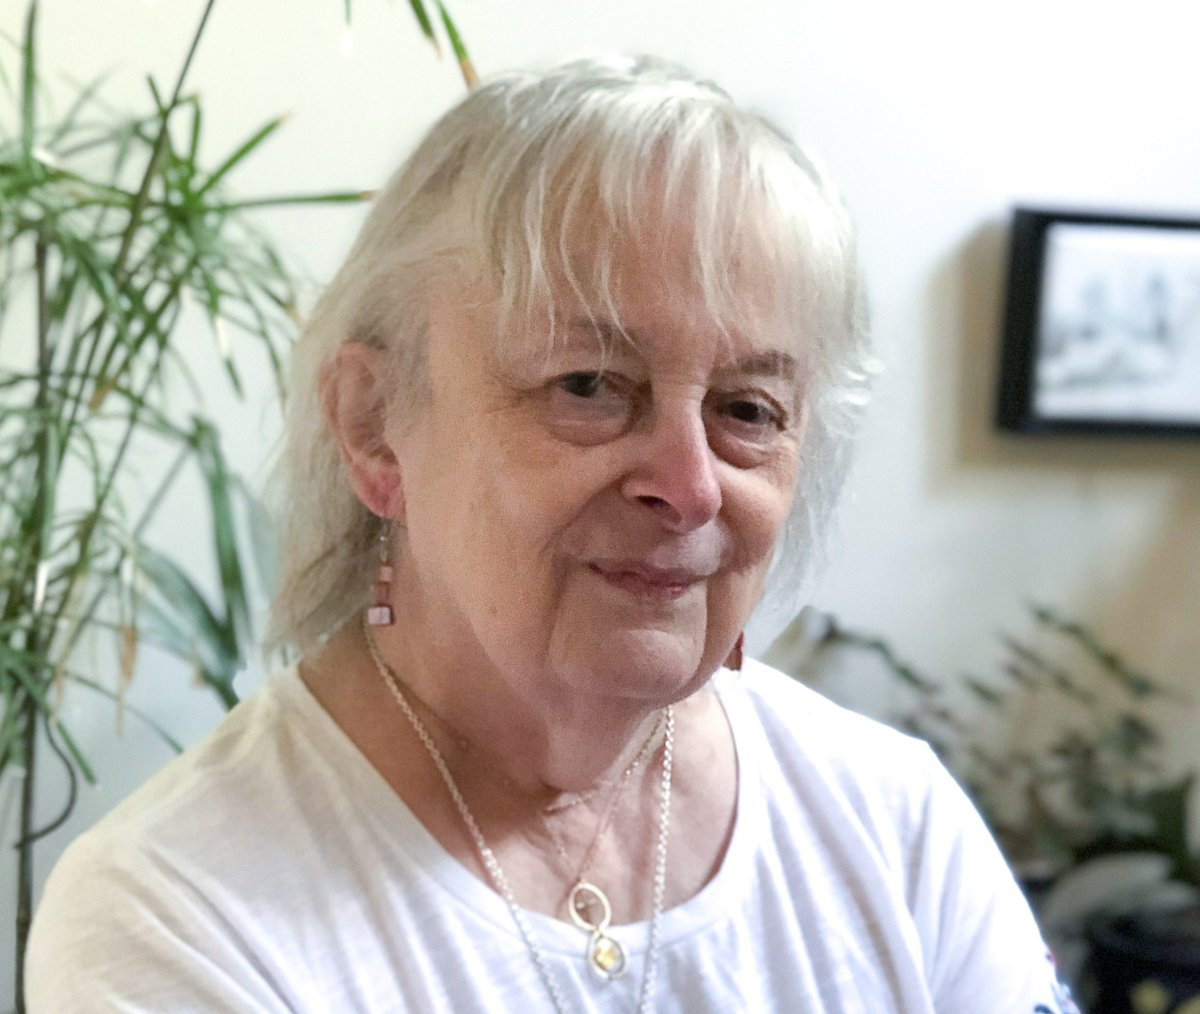 The former Glengarry-Prescott-Russell Green Party candidate says she believes the party's decision to kick her out was discriminatory.